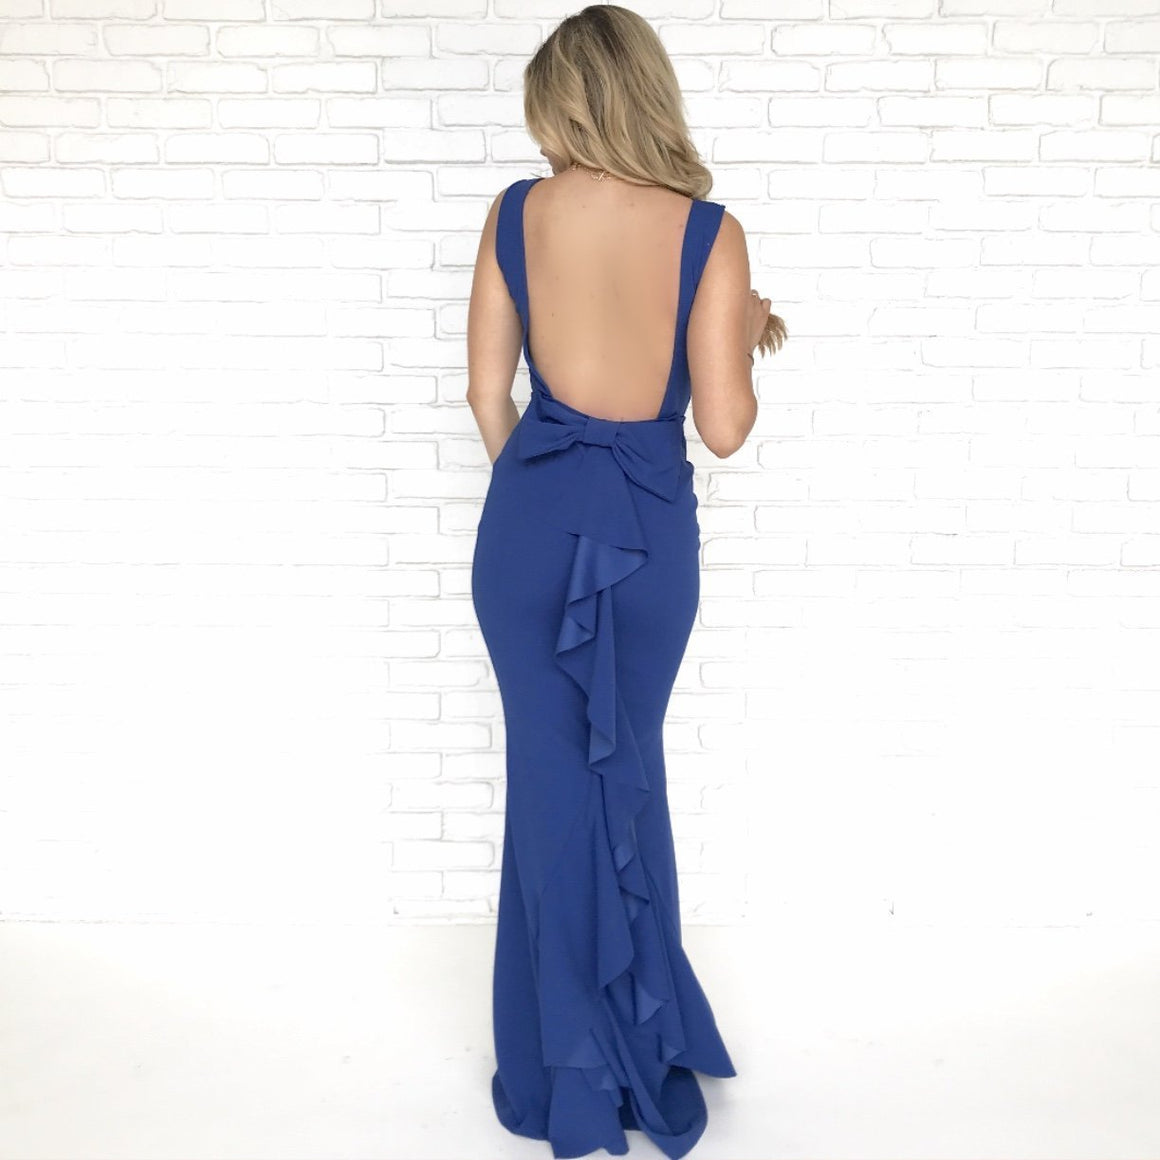 Perfect Duet Bow Back Maxi Dress In Royal Blue - Dainty Hooligan